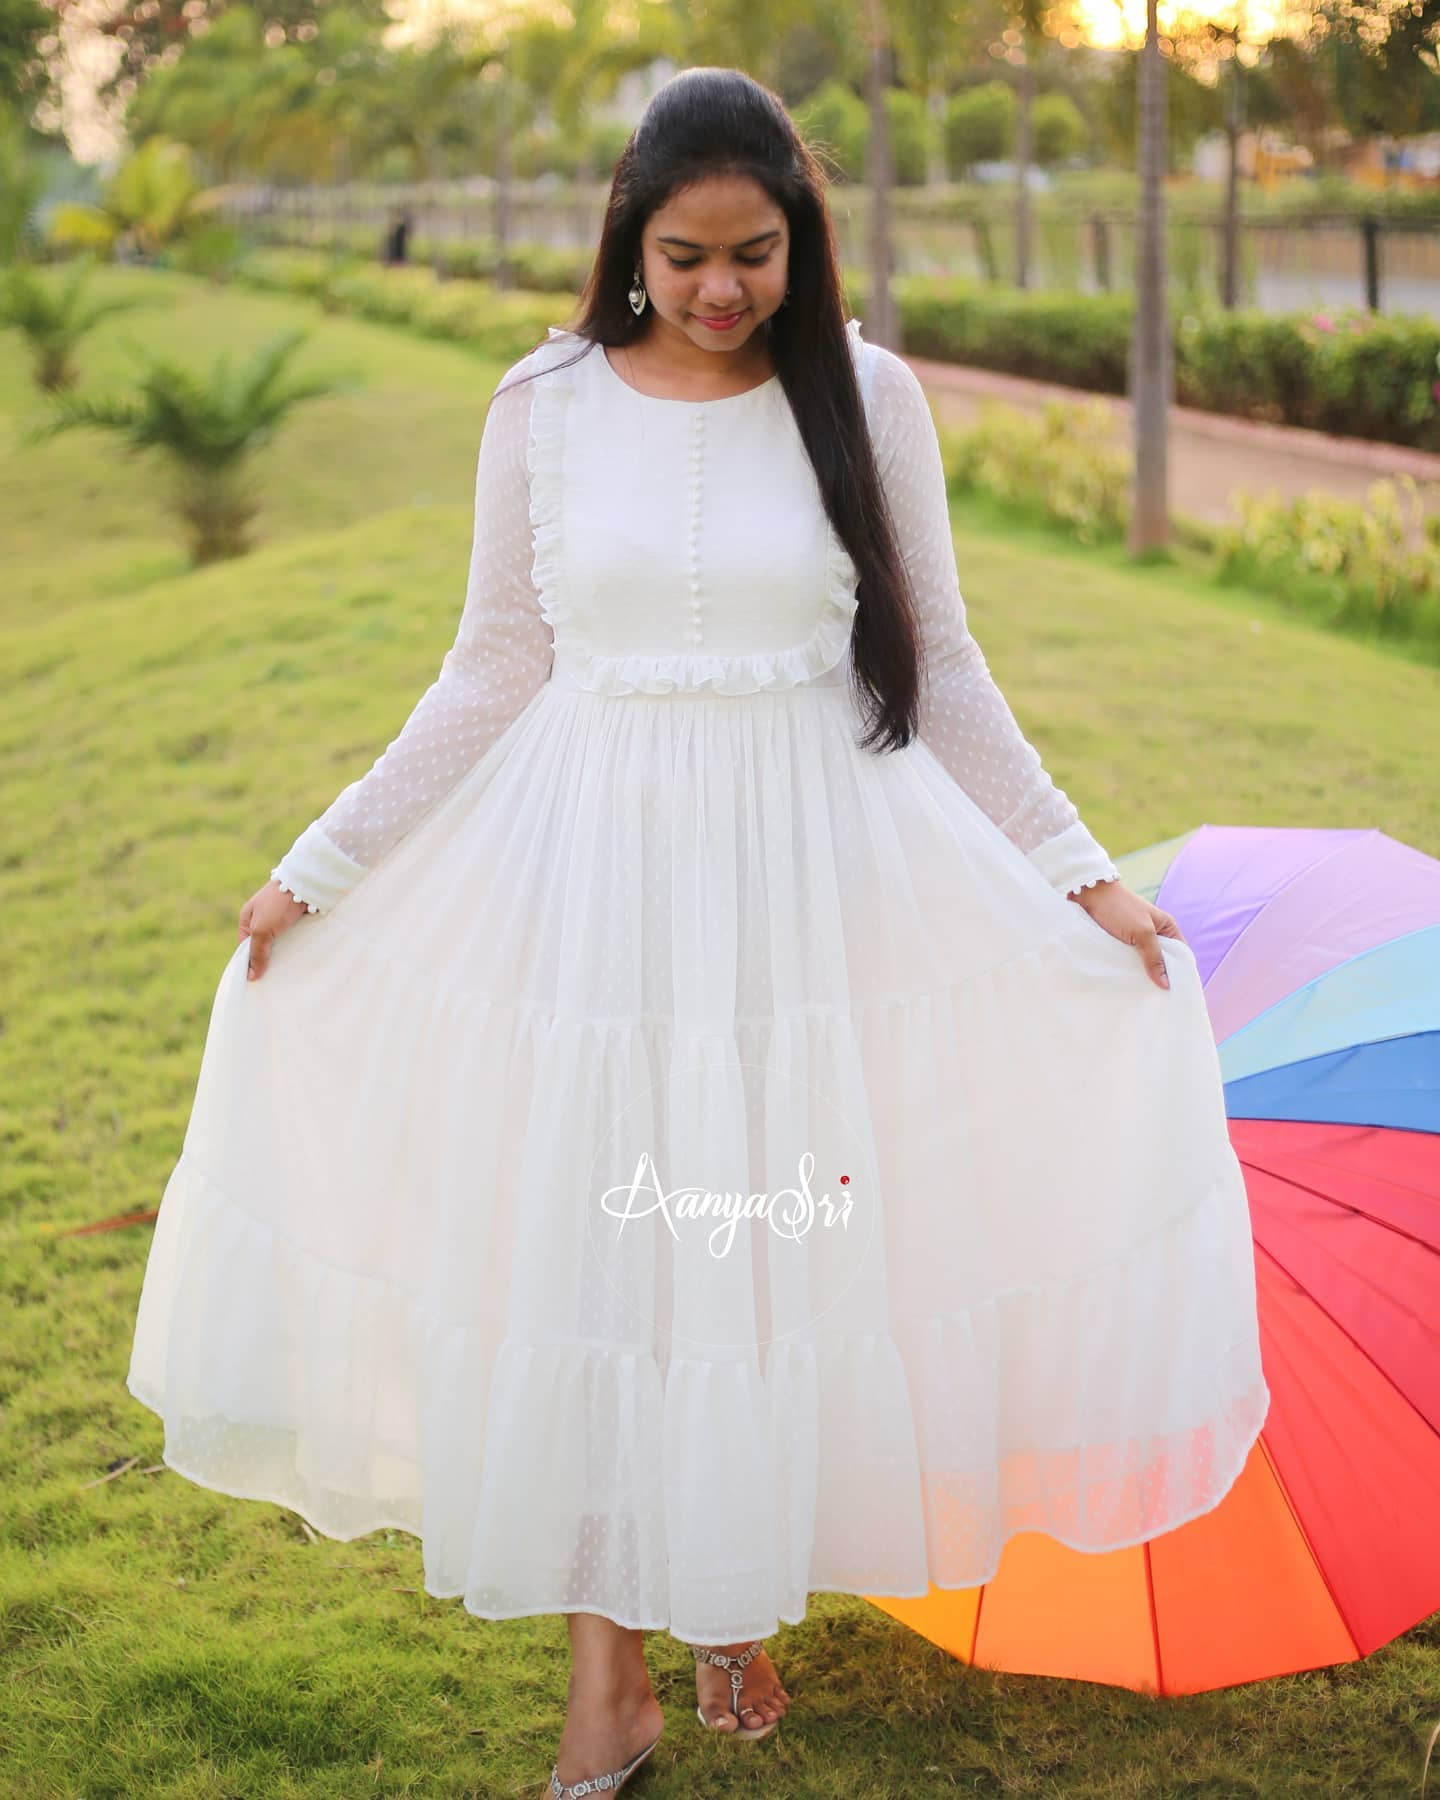 Vennela. Price :  RS. 2600/- White layered ankle length frock with ruffle and potlis detailing on the yoke . Comes with full sleeves and potlis on the sleeves and boat neck. 2021-06-09